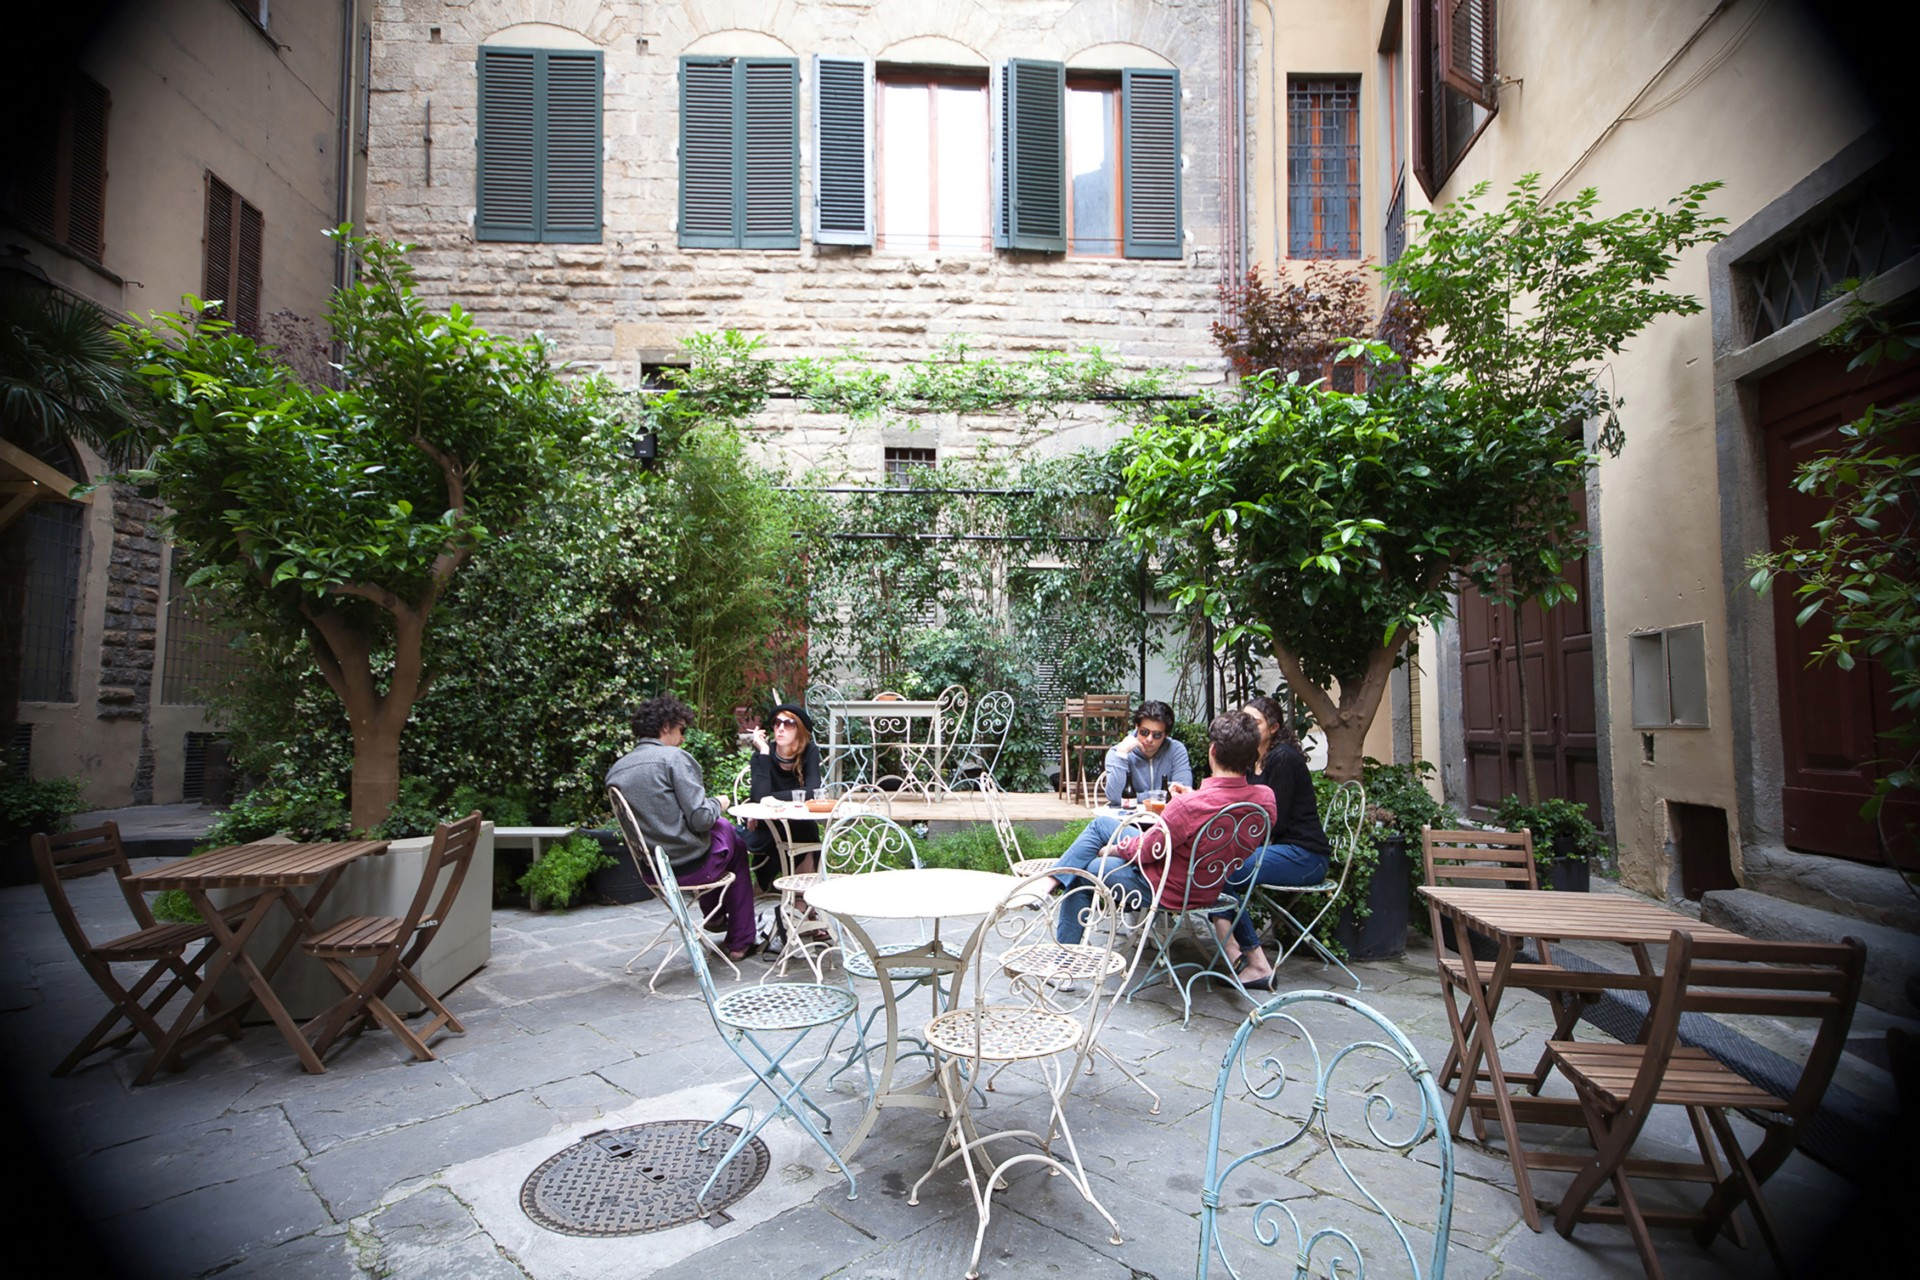 The winners of the Tuscan Architectural Award